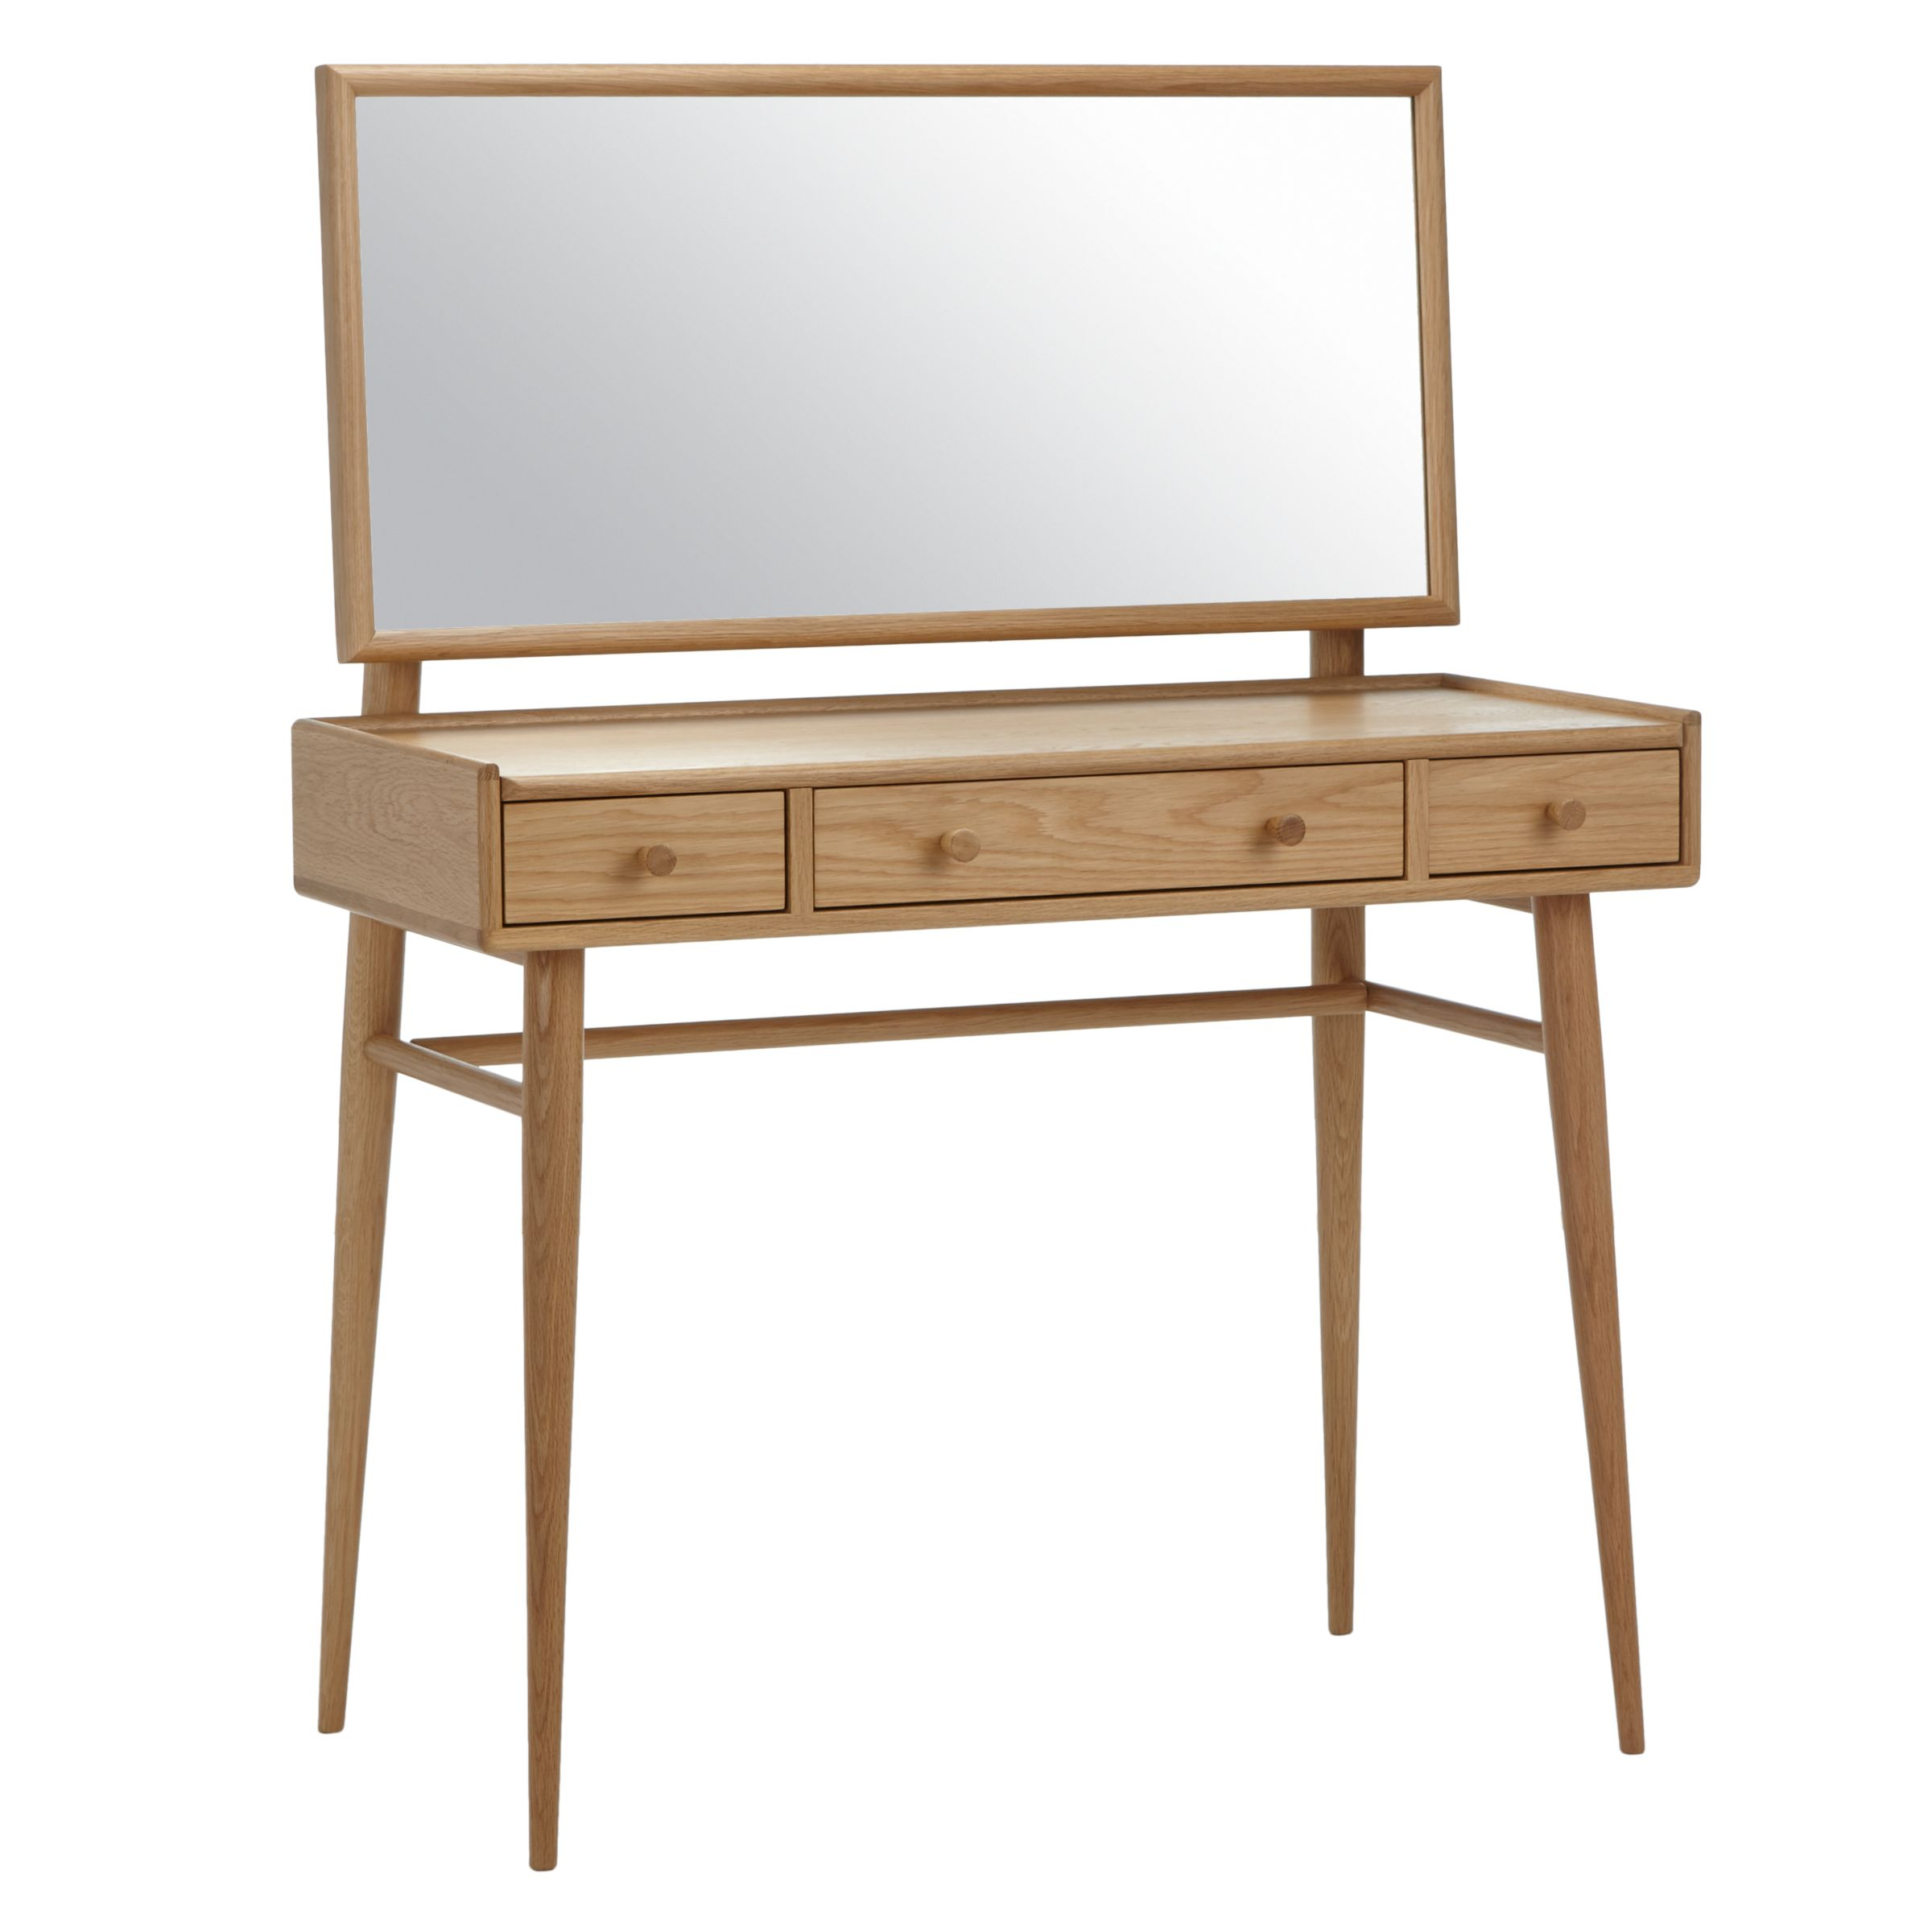 ercol for John Lewis ercol for John Lewis Shalstone Dressing Table